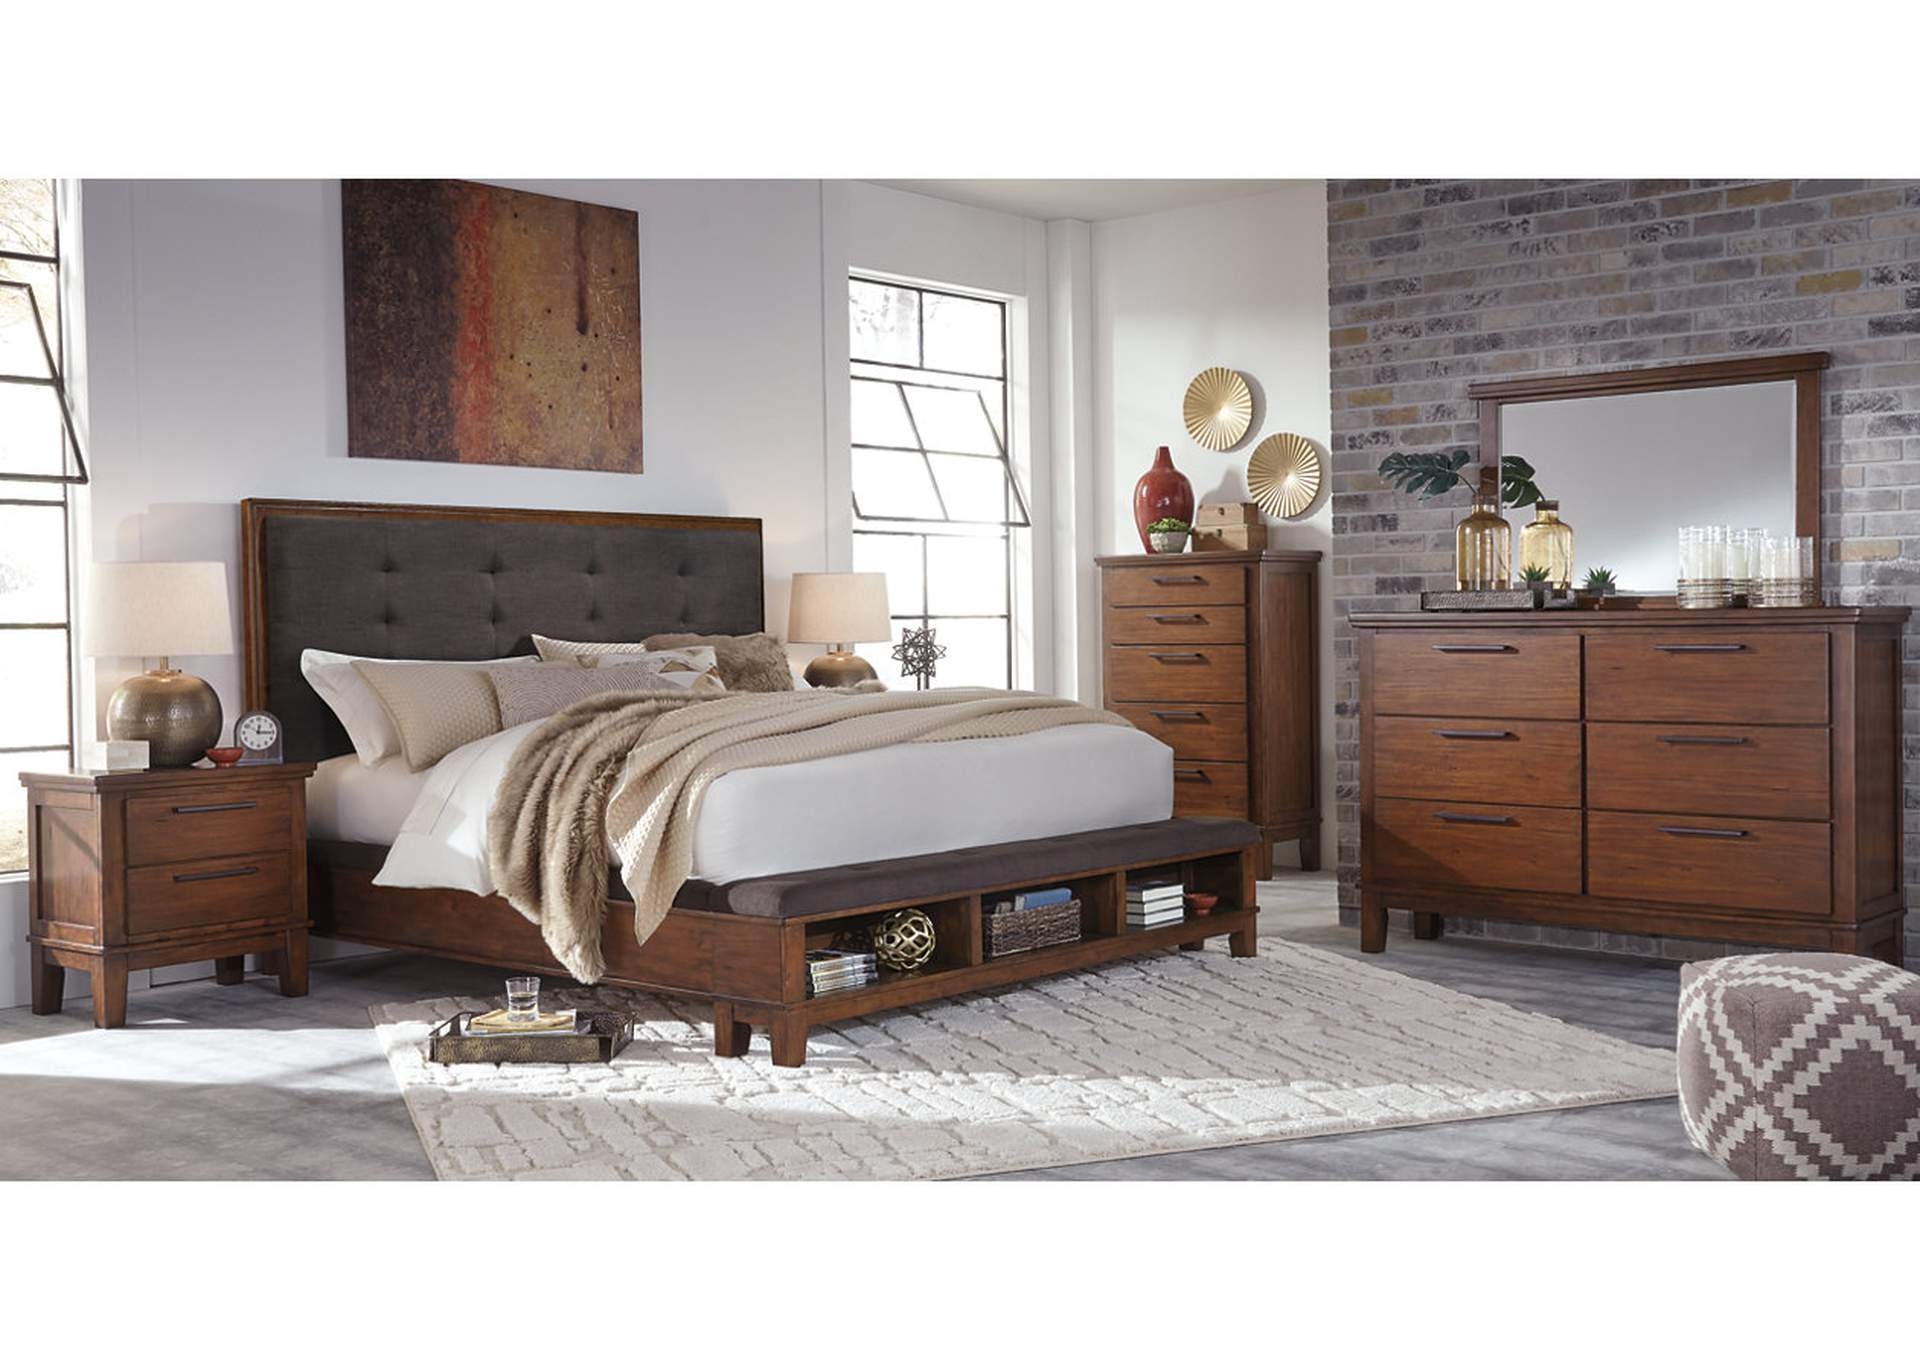 Ralene Medium Brown King Upholstered Storage Bed w/Dresser & Mirror,Signature Design By Ashley